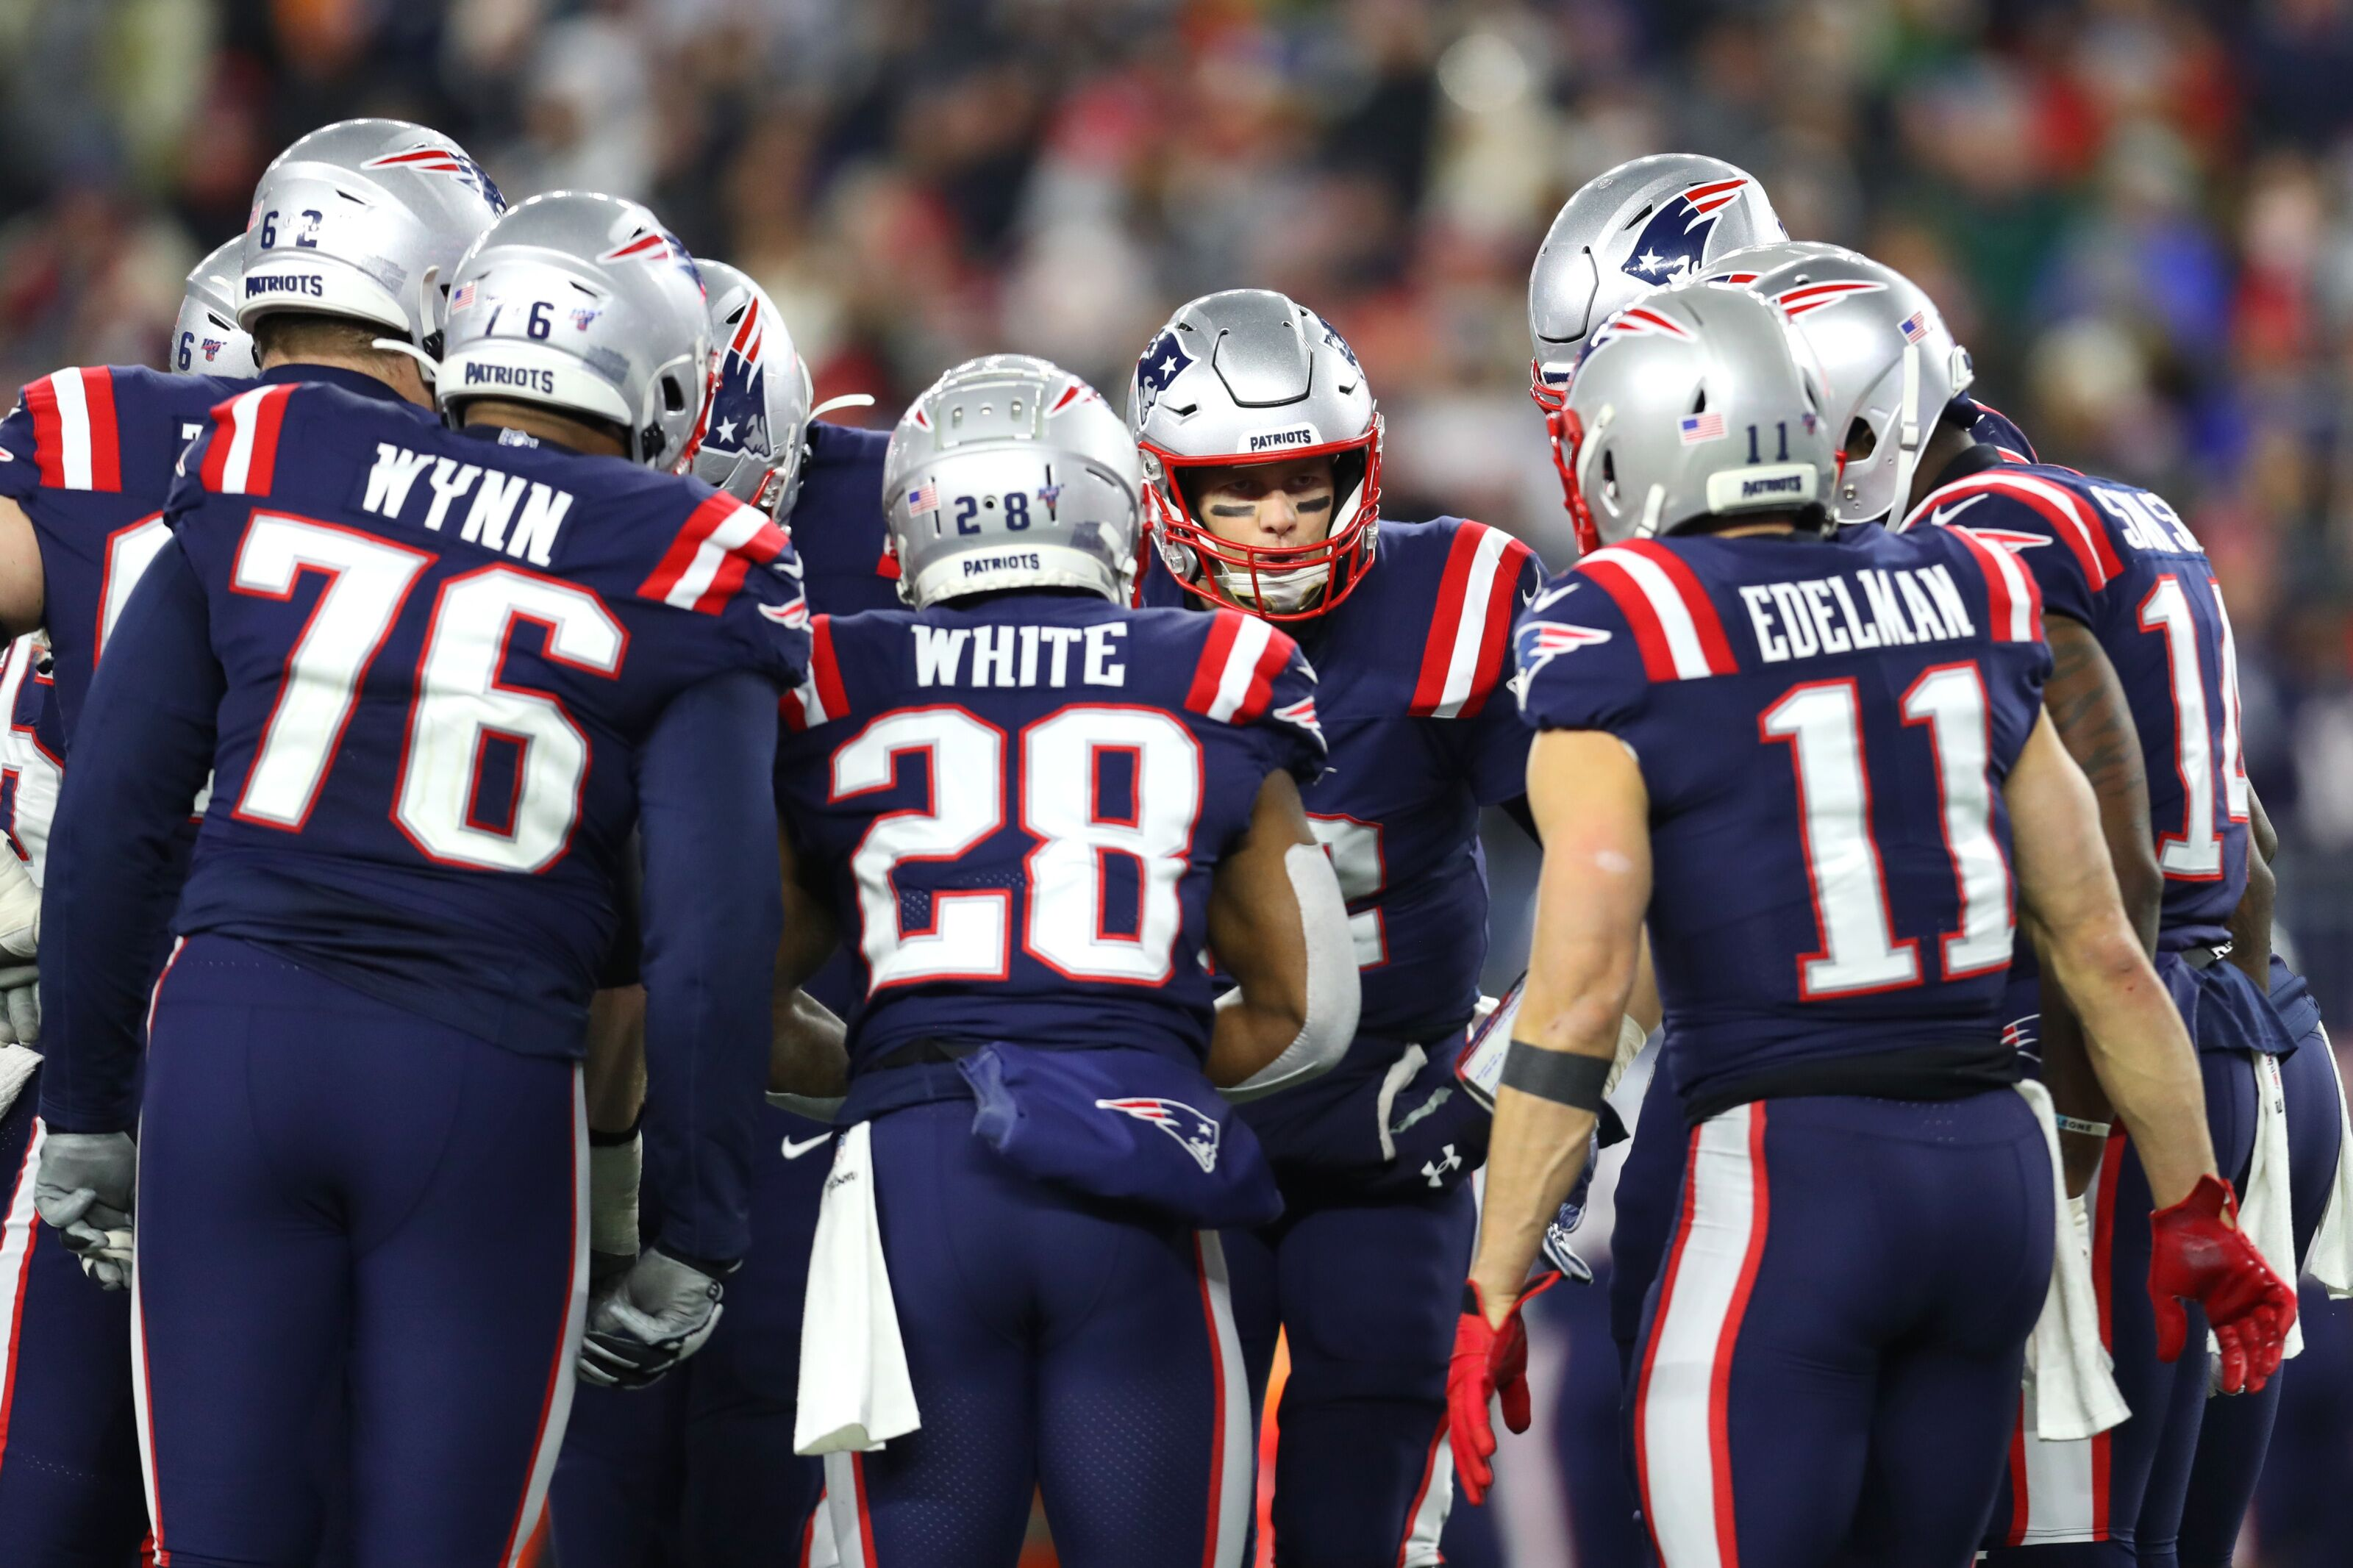 It's now or never for the Patriots' offense this week against the Bengals